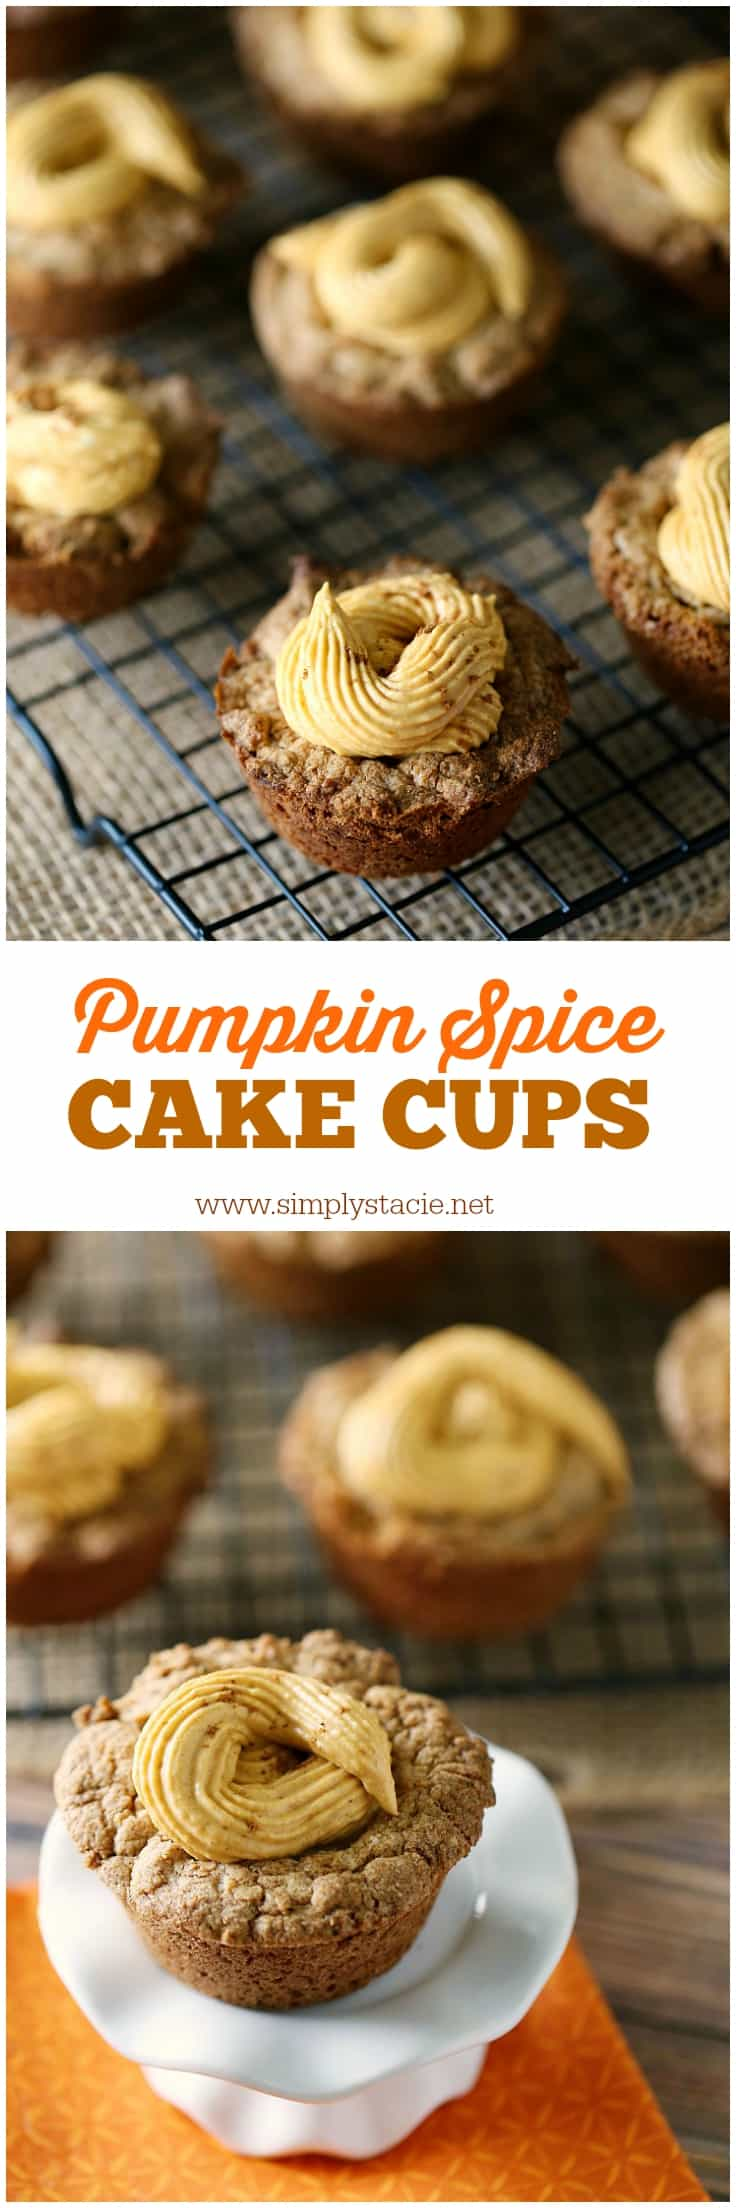 Pumpkin Spice Cake Cups - Calling all pumpkin spice lovers! These delicious spice cake cups are filled to the brim with sweet pumpkin spice cheesecake filling for a delicious and decadent fall dessert.